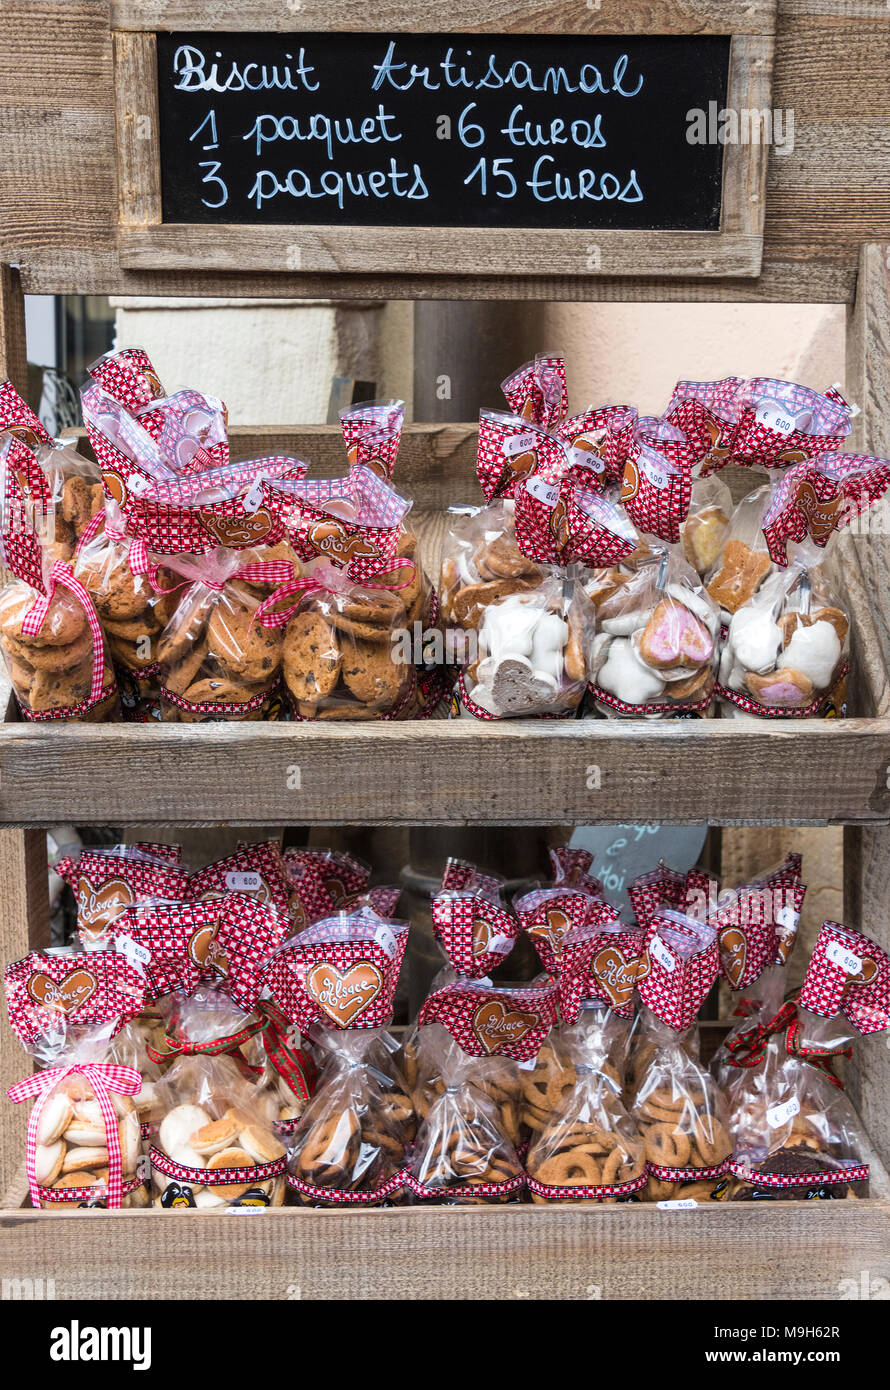 A market stall selling traditional biscuits, Colmar, Alsatian Wine Route, France - Stock Image